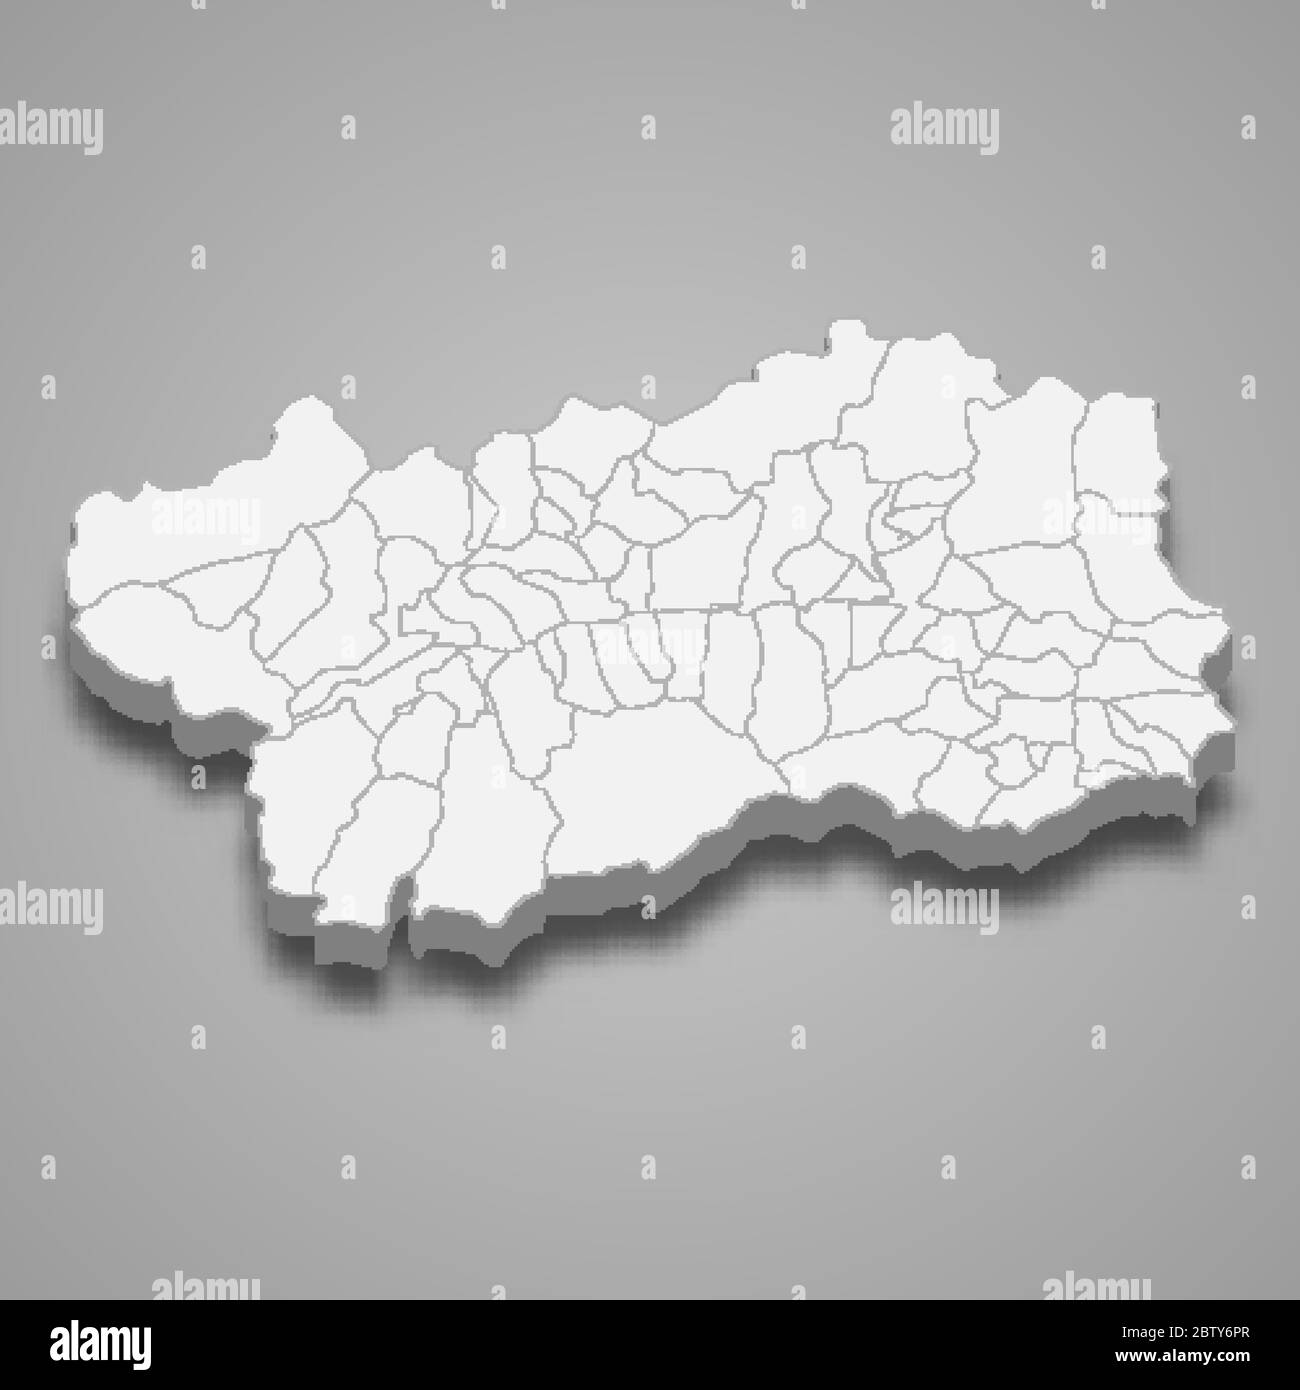 Cartina Muta Della Valle D Aosta.Aosta Italy Map High Resolution Stock Photography And Images Alamy